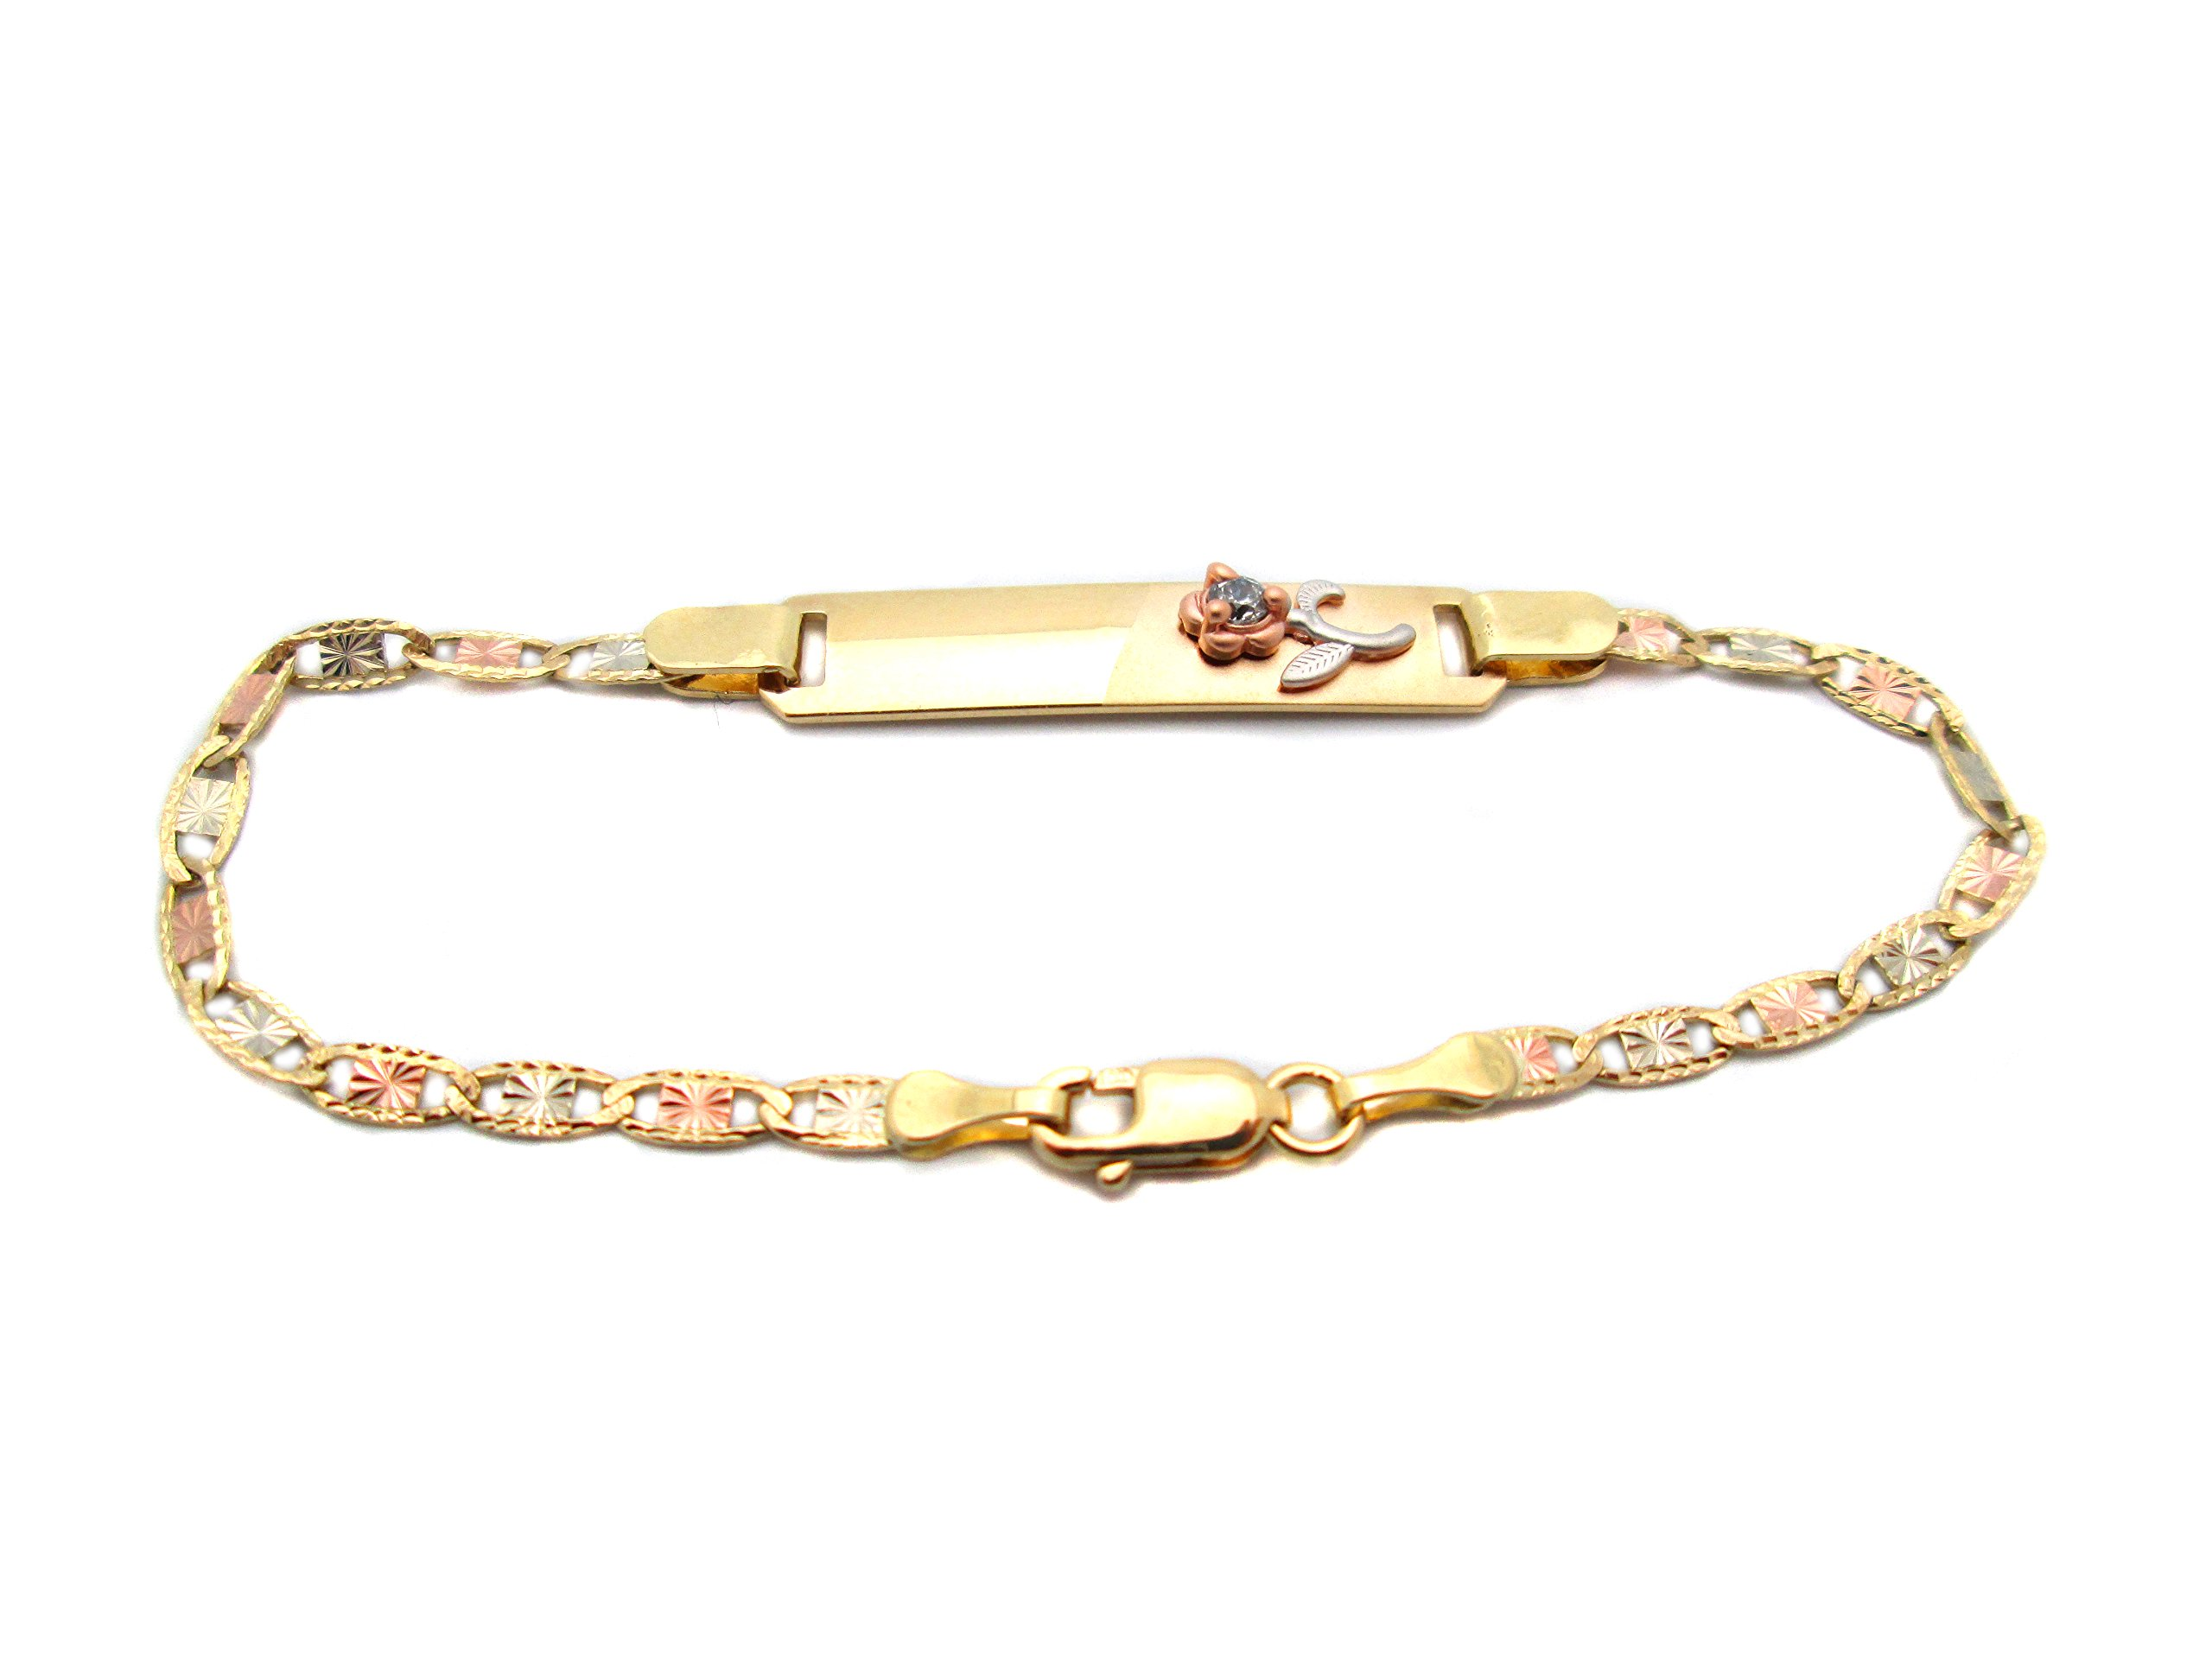 Children Babies 14k Tri Gold Valentino link ID Bracelet With Rose 5.5 inch by AMZ Jewelry